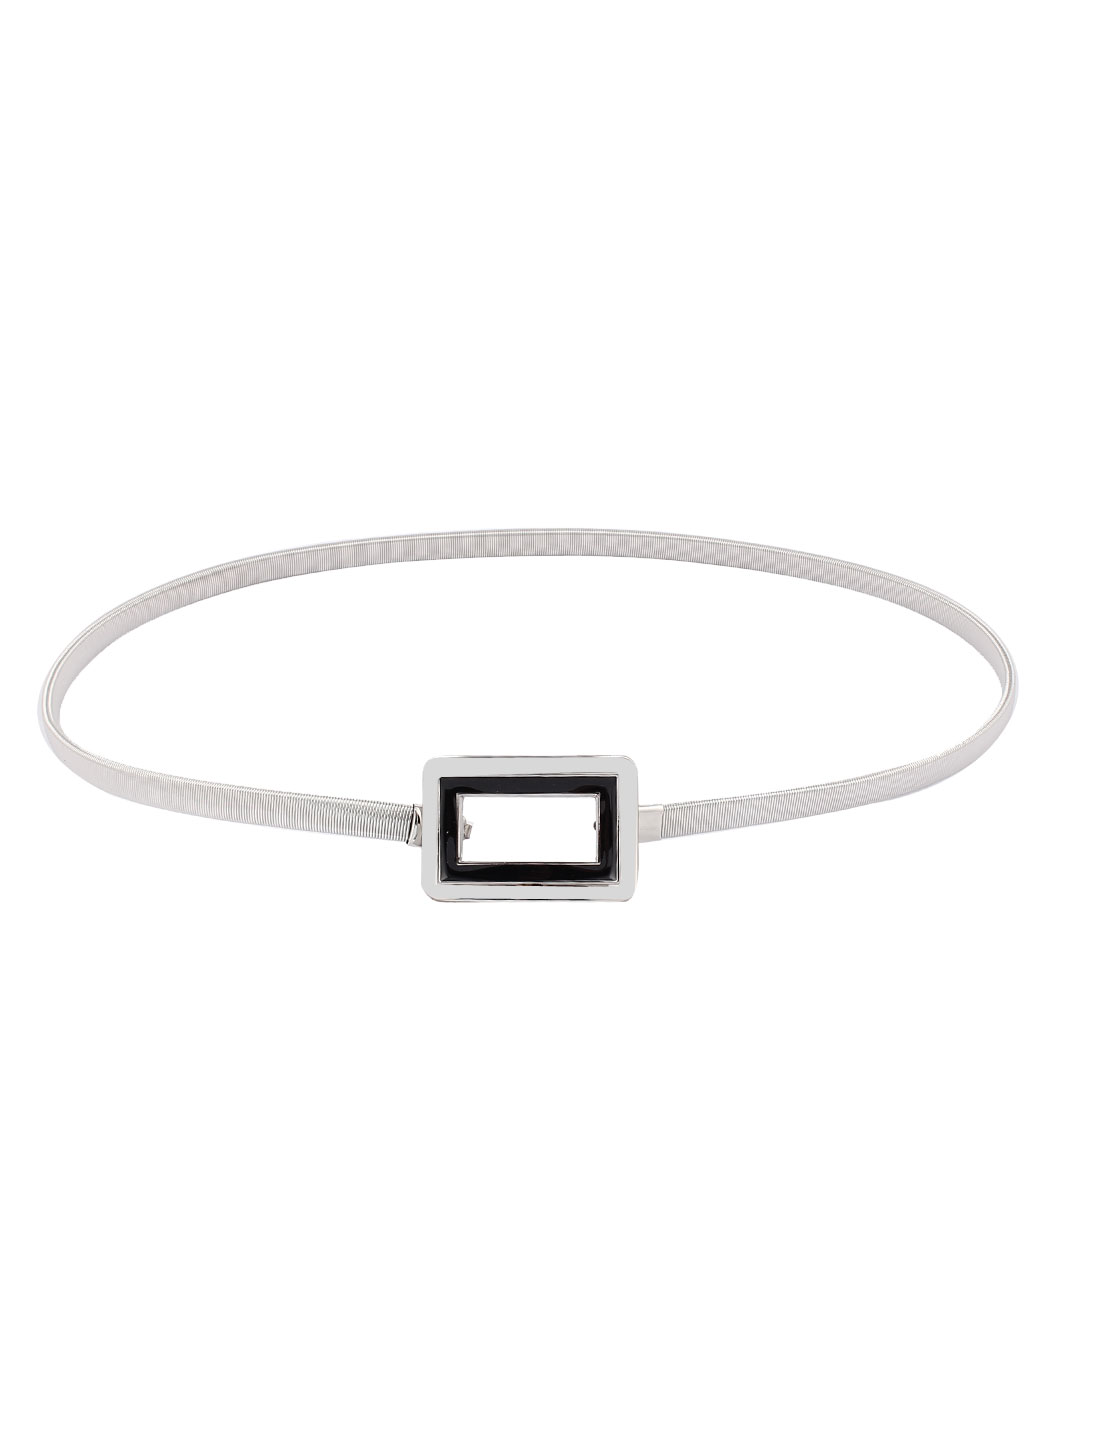 Silver Tone Rectangle Interlocking Buckle Stretchy Waist Chain for Lady